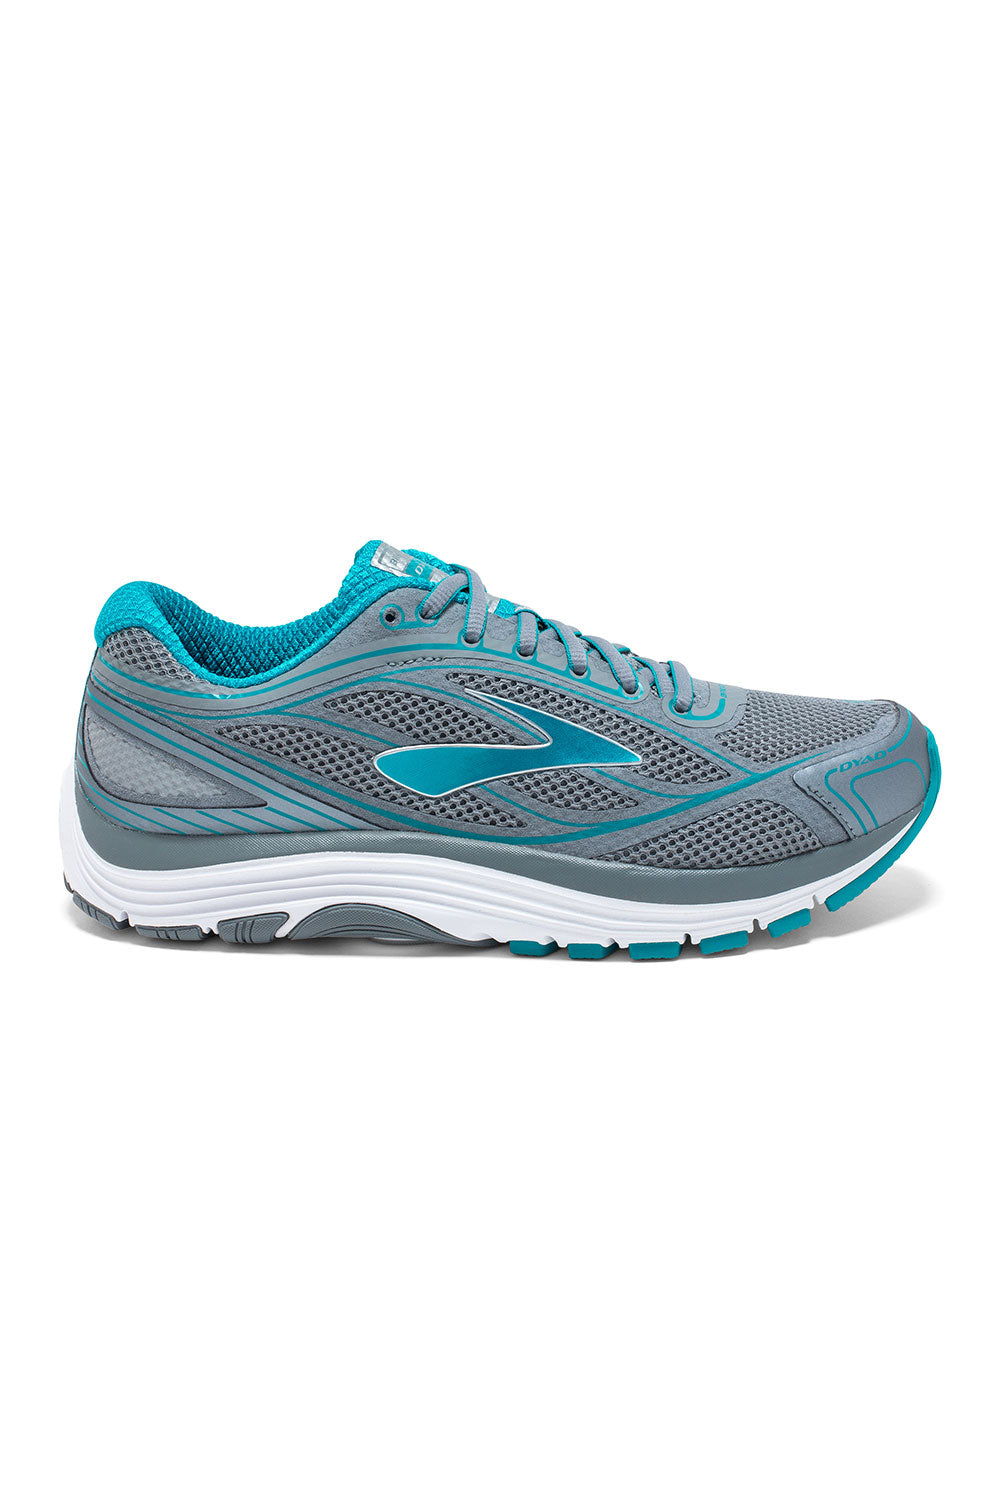 Hoka Running Shoes Orthotics